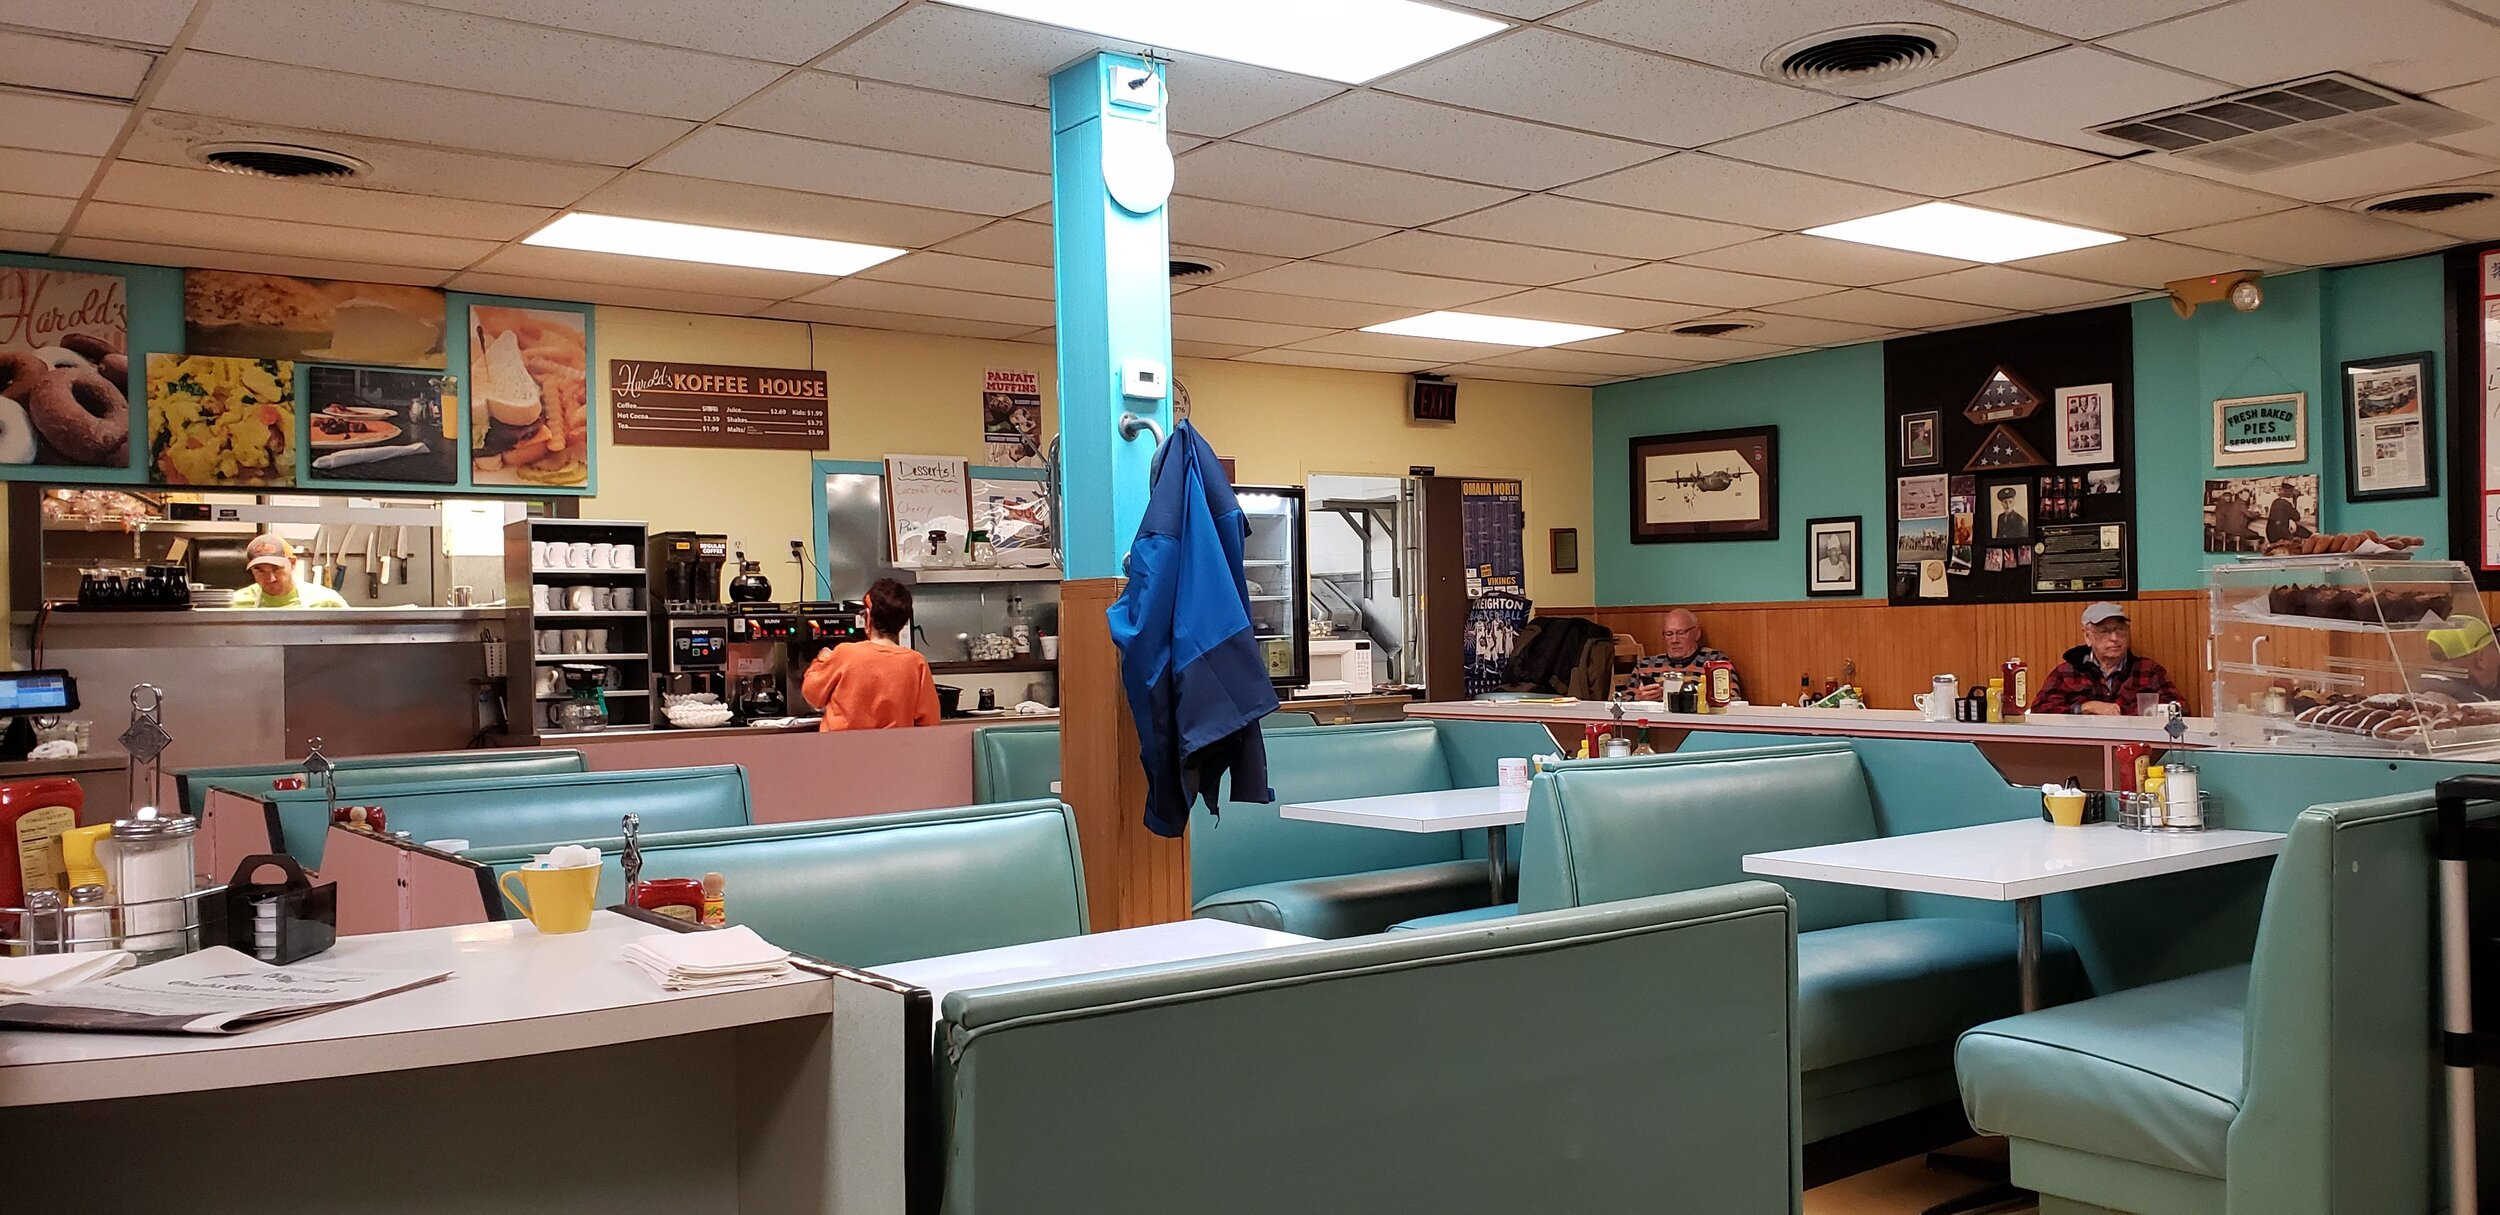 Harold's Koffee House is a classic mid-century diner in Omaha's Florence neighborhood. Photo courtesy of Lisa and Tim Trudell.